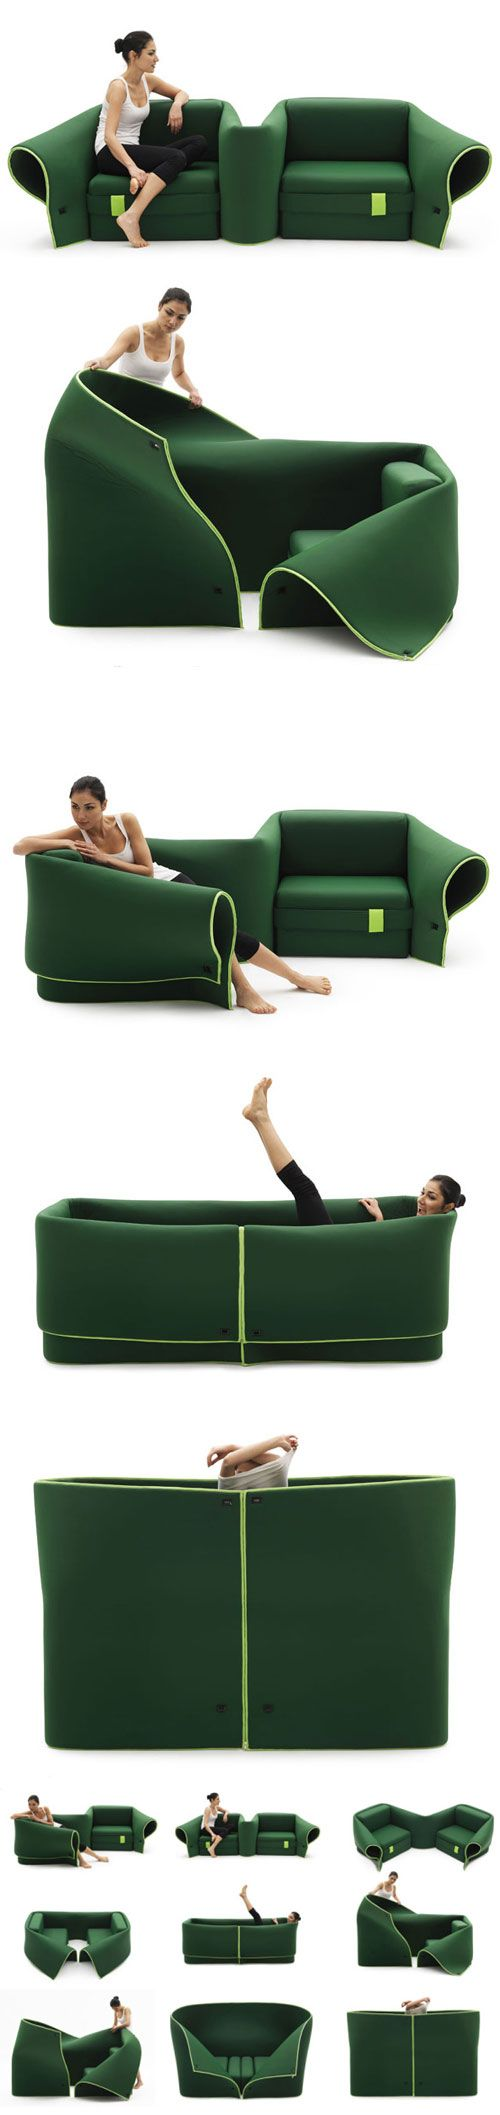 Ideas, Stuff, Chairs, Awesome, Furniture, Products, Convertible Sofas, Design, Convertible Couch